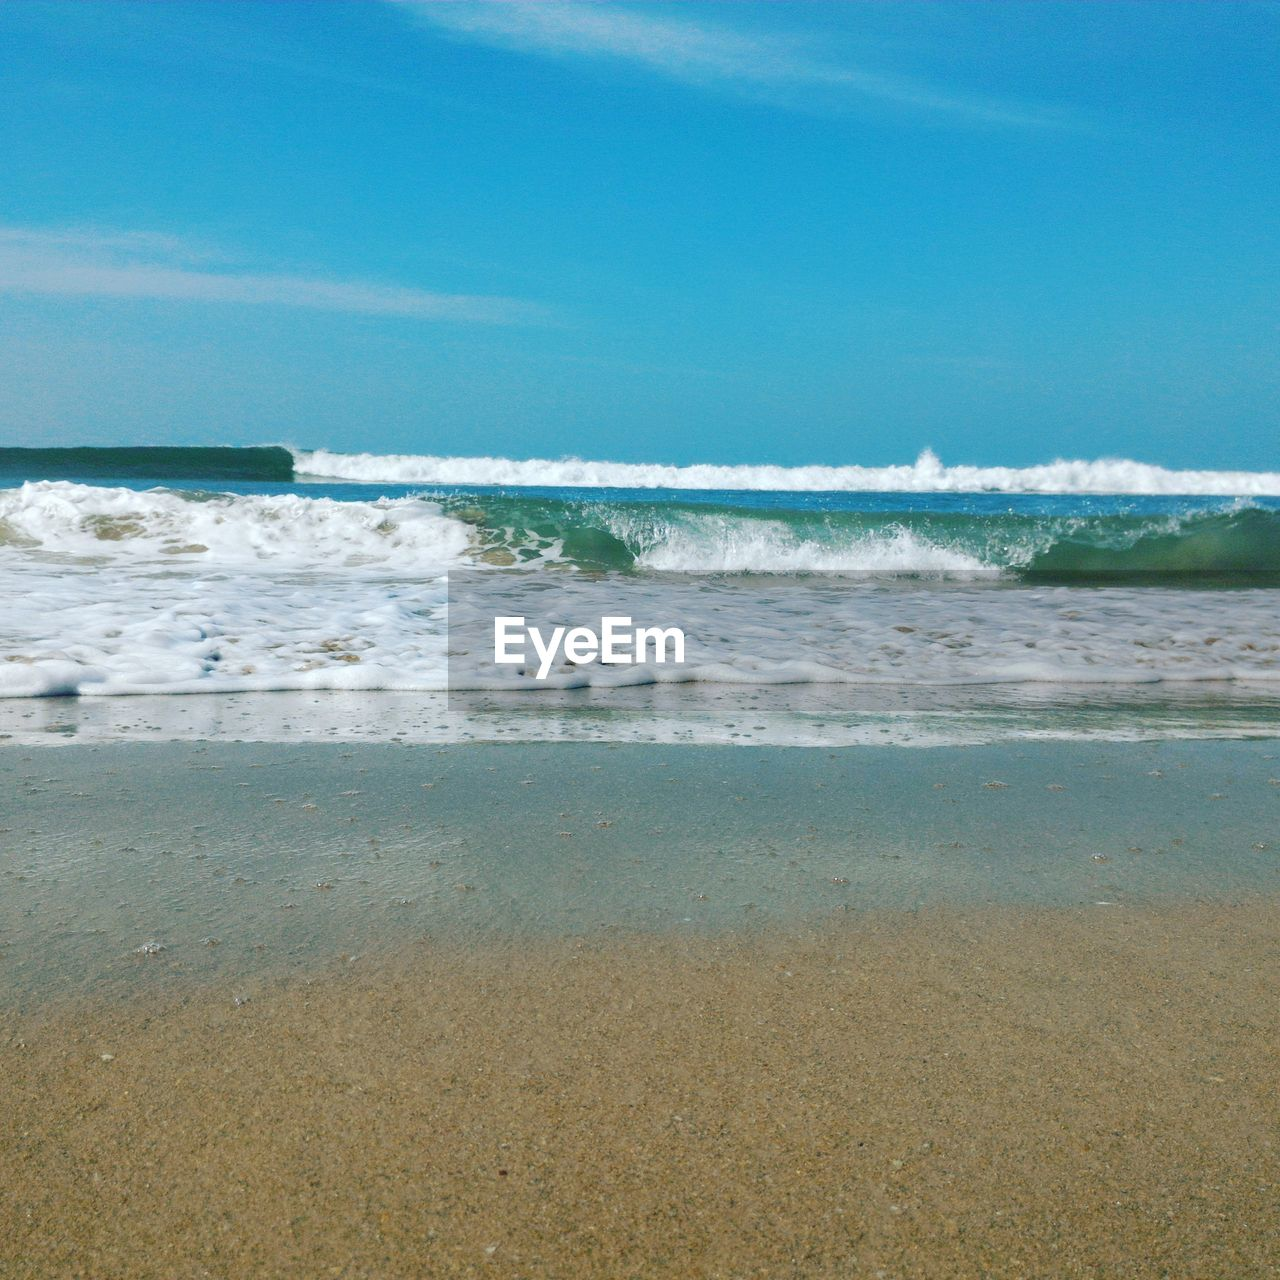 sea, beach, wave, water, surf, nature, sand, beauty in nature, shore, scenics, tranquility, blue, day, tranquil scene, no people, tide, outdoors, horizon over water, sky